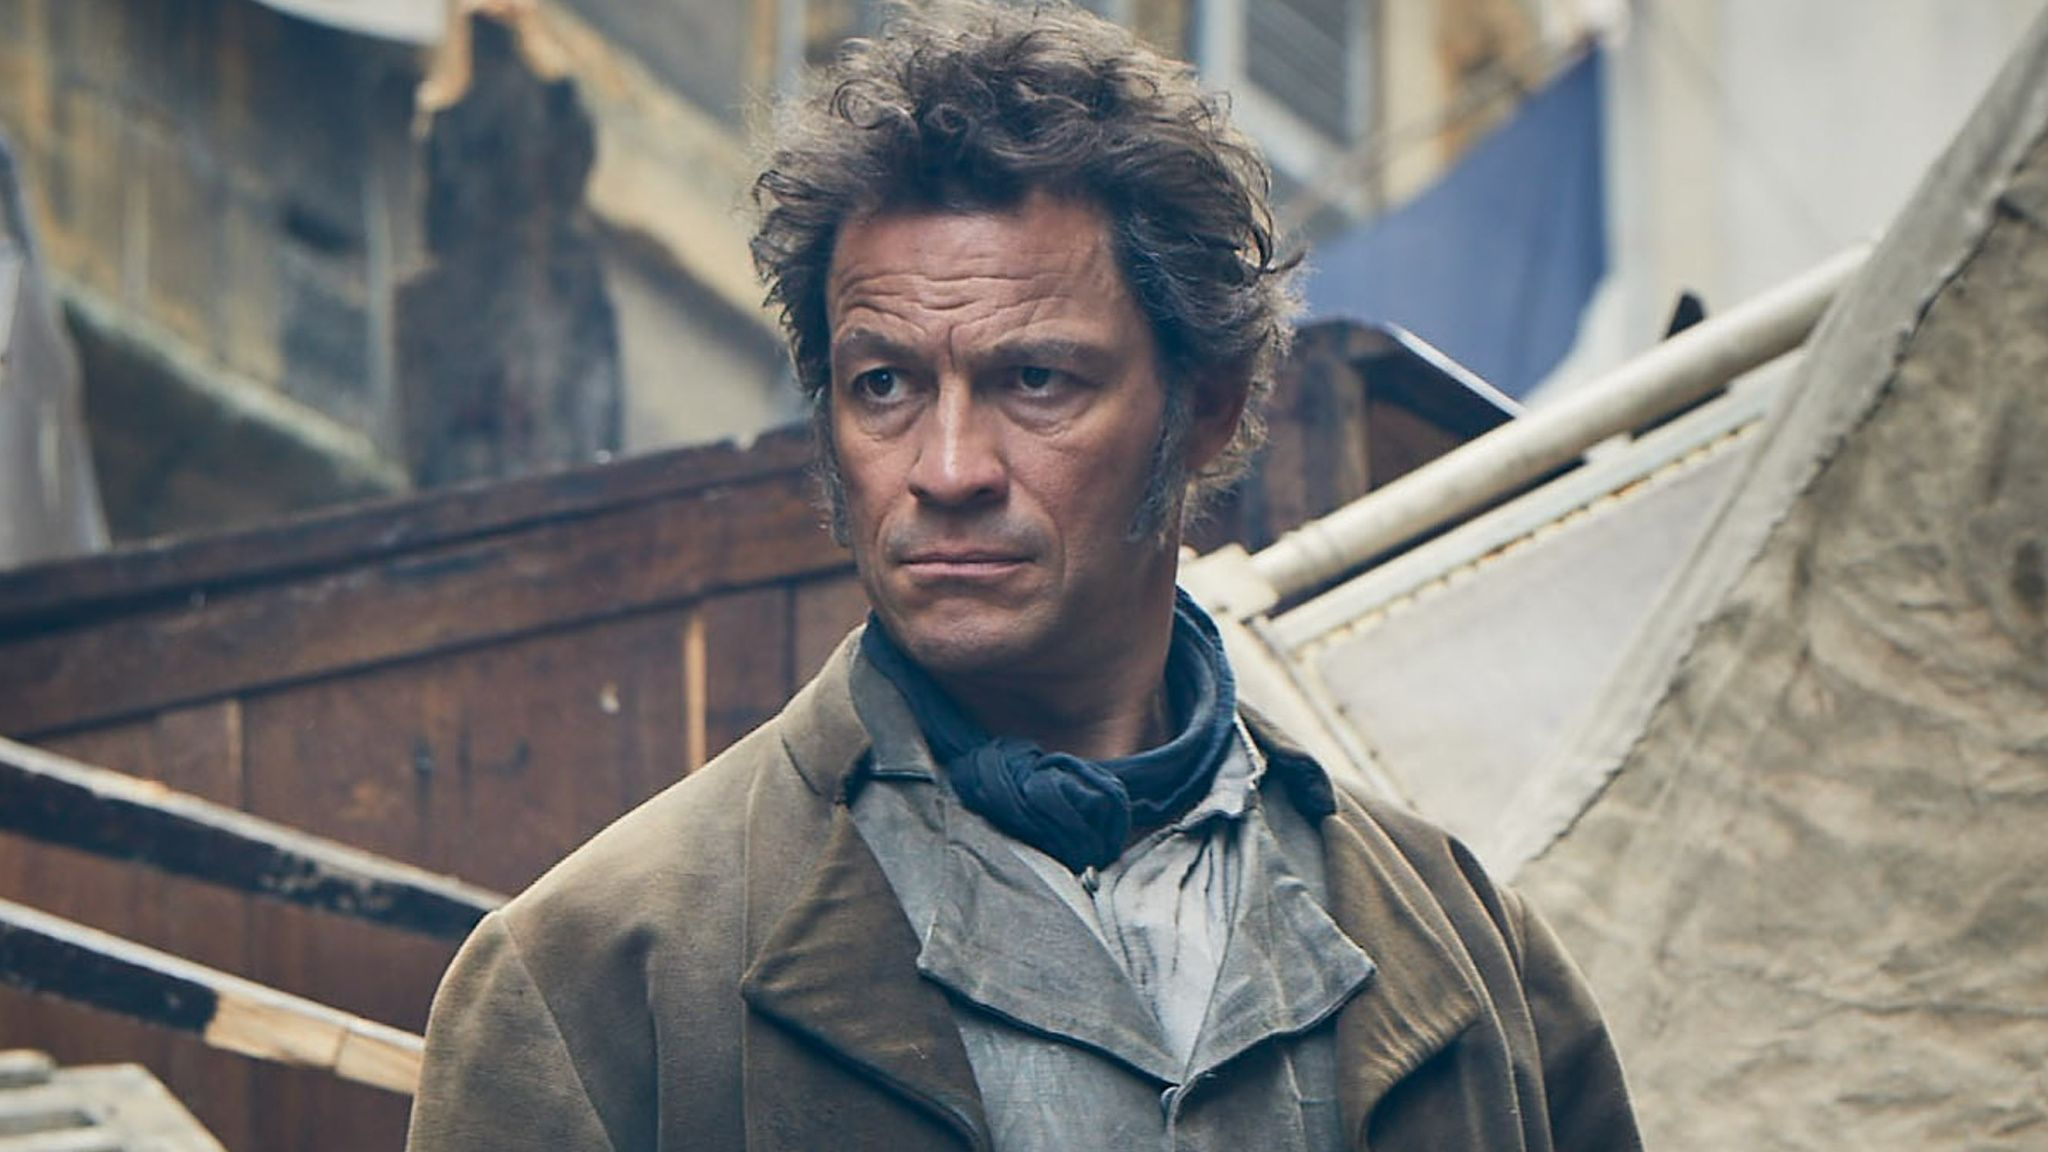 Lily Collins Dominic West David Oyelowo Star In Les Miserables Variety British Period Dramas Les Miserables Dominic West